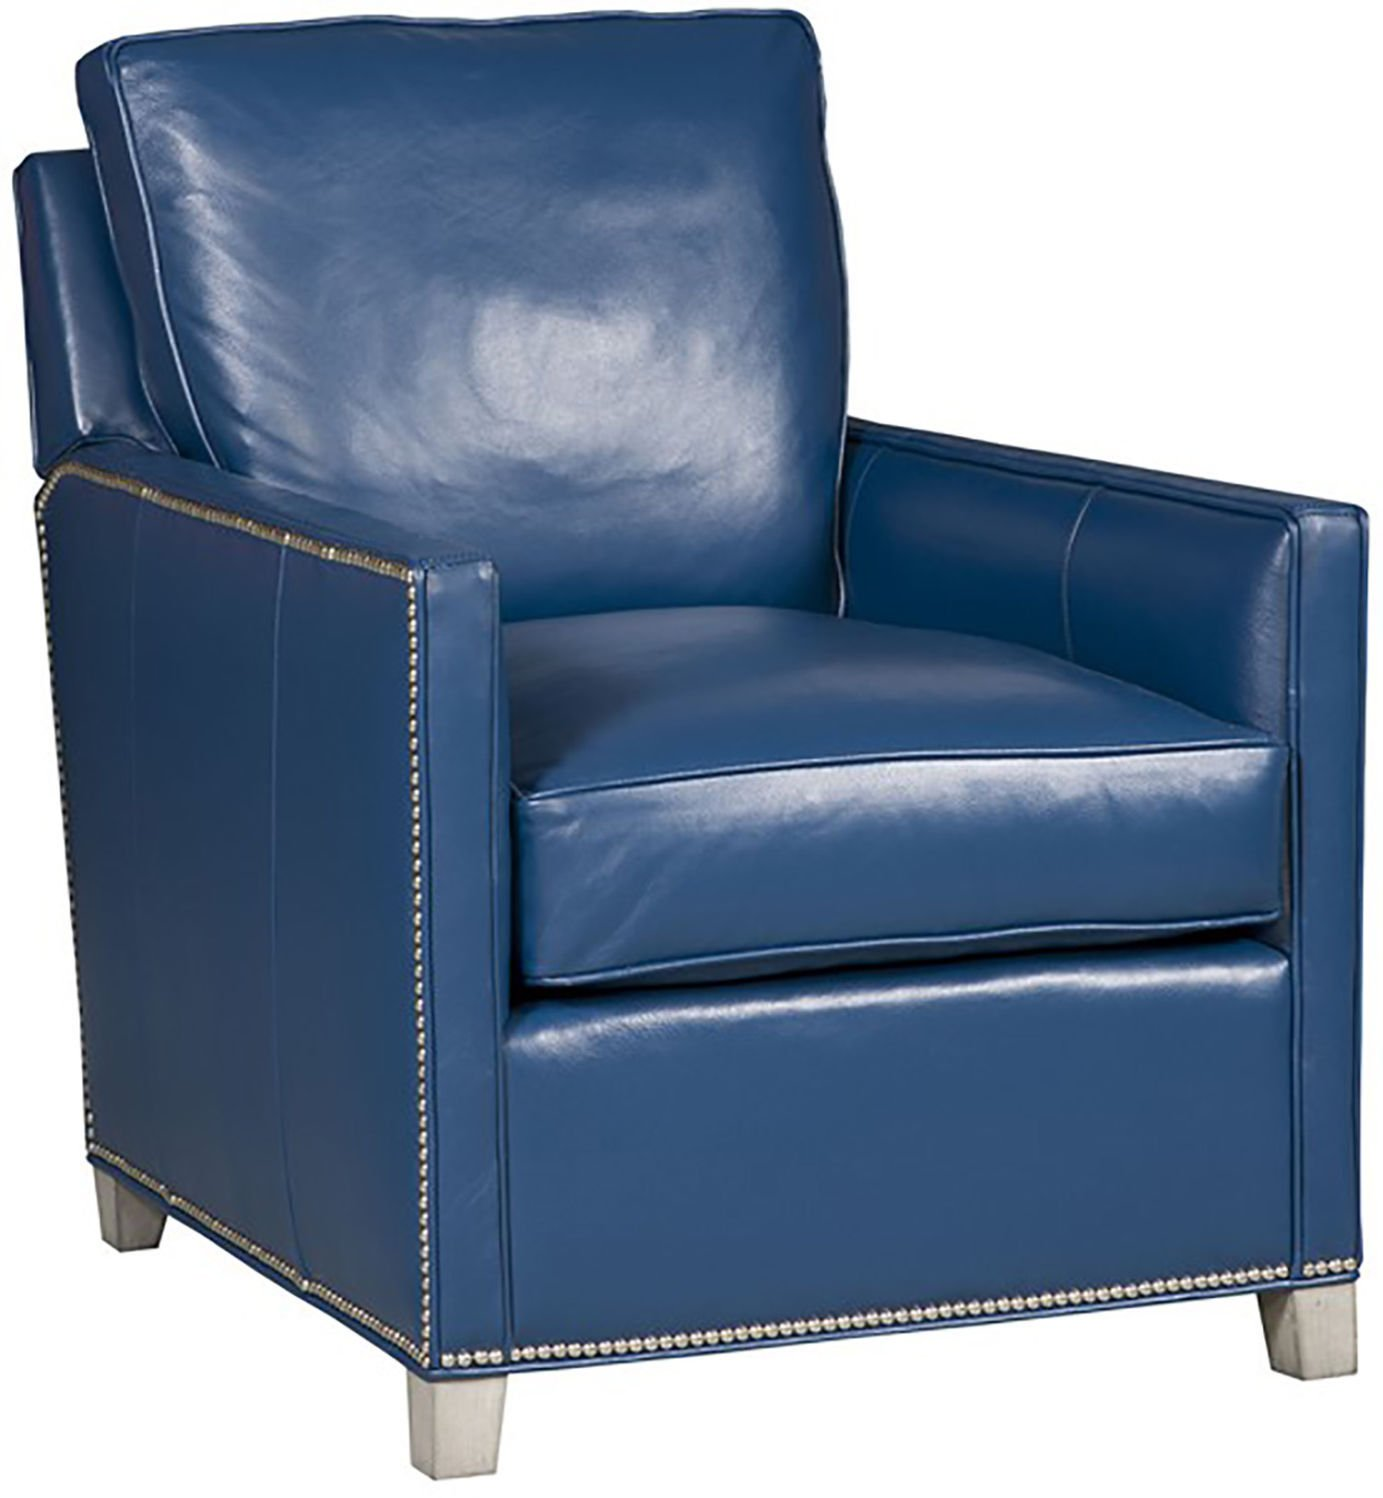 Comfort never looked so good A guide to the new improved and stylish recliners  sc 1 st  Napa Valley Register : new recliners - islam-shia.org